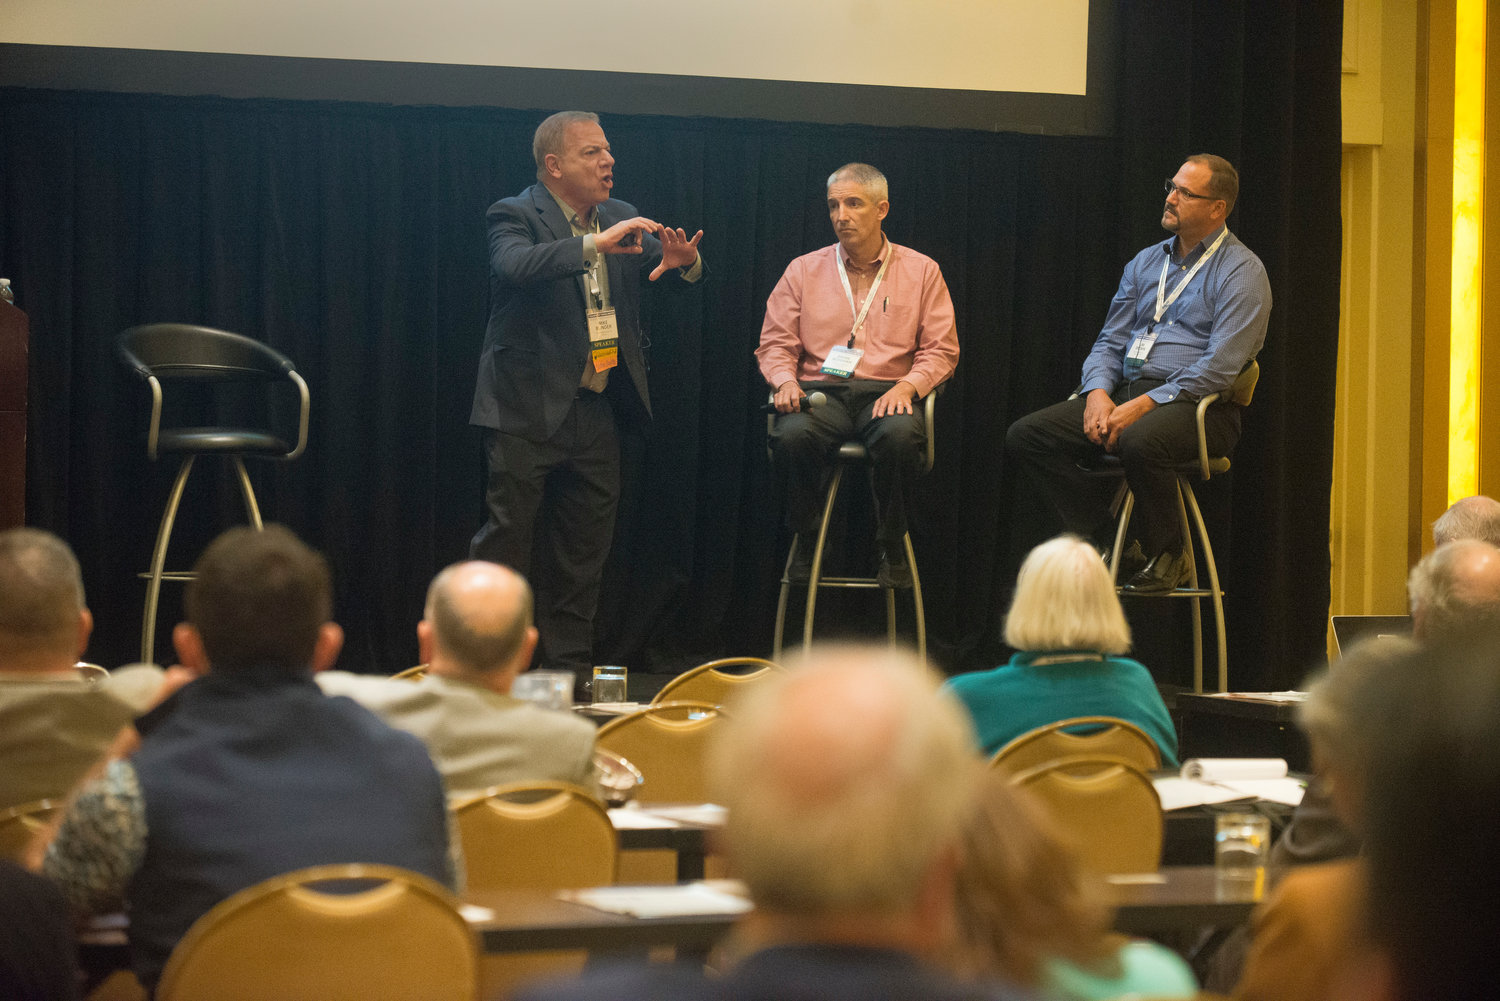 At a panel on winning back real estate advertising, Mike Blinder of The Blinder Group, left, leads the discussion with Brian Monihan, vice president and publisher at Pamplin Media, and Jim Brown, vice president, sales and marketing for Borrell Associates.